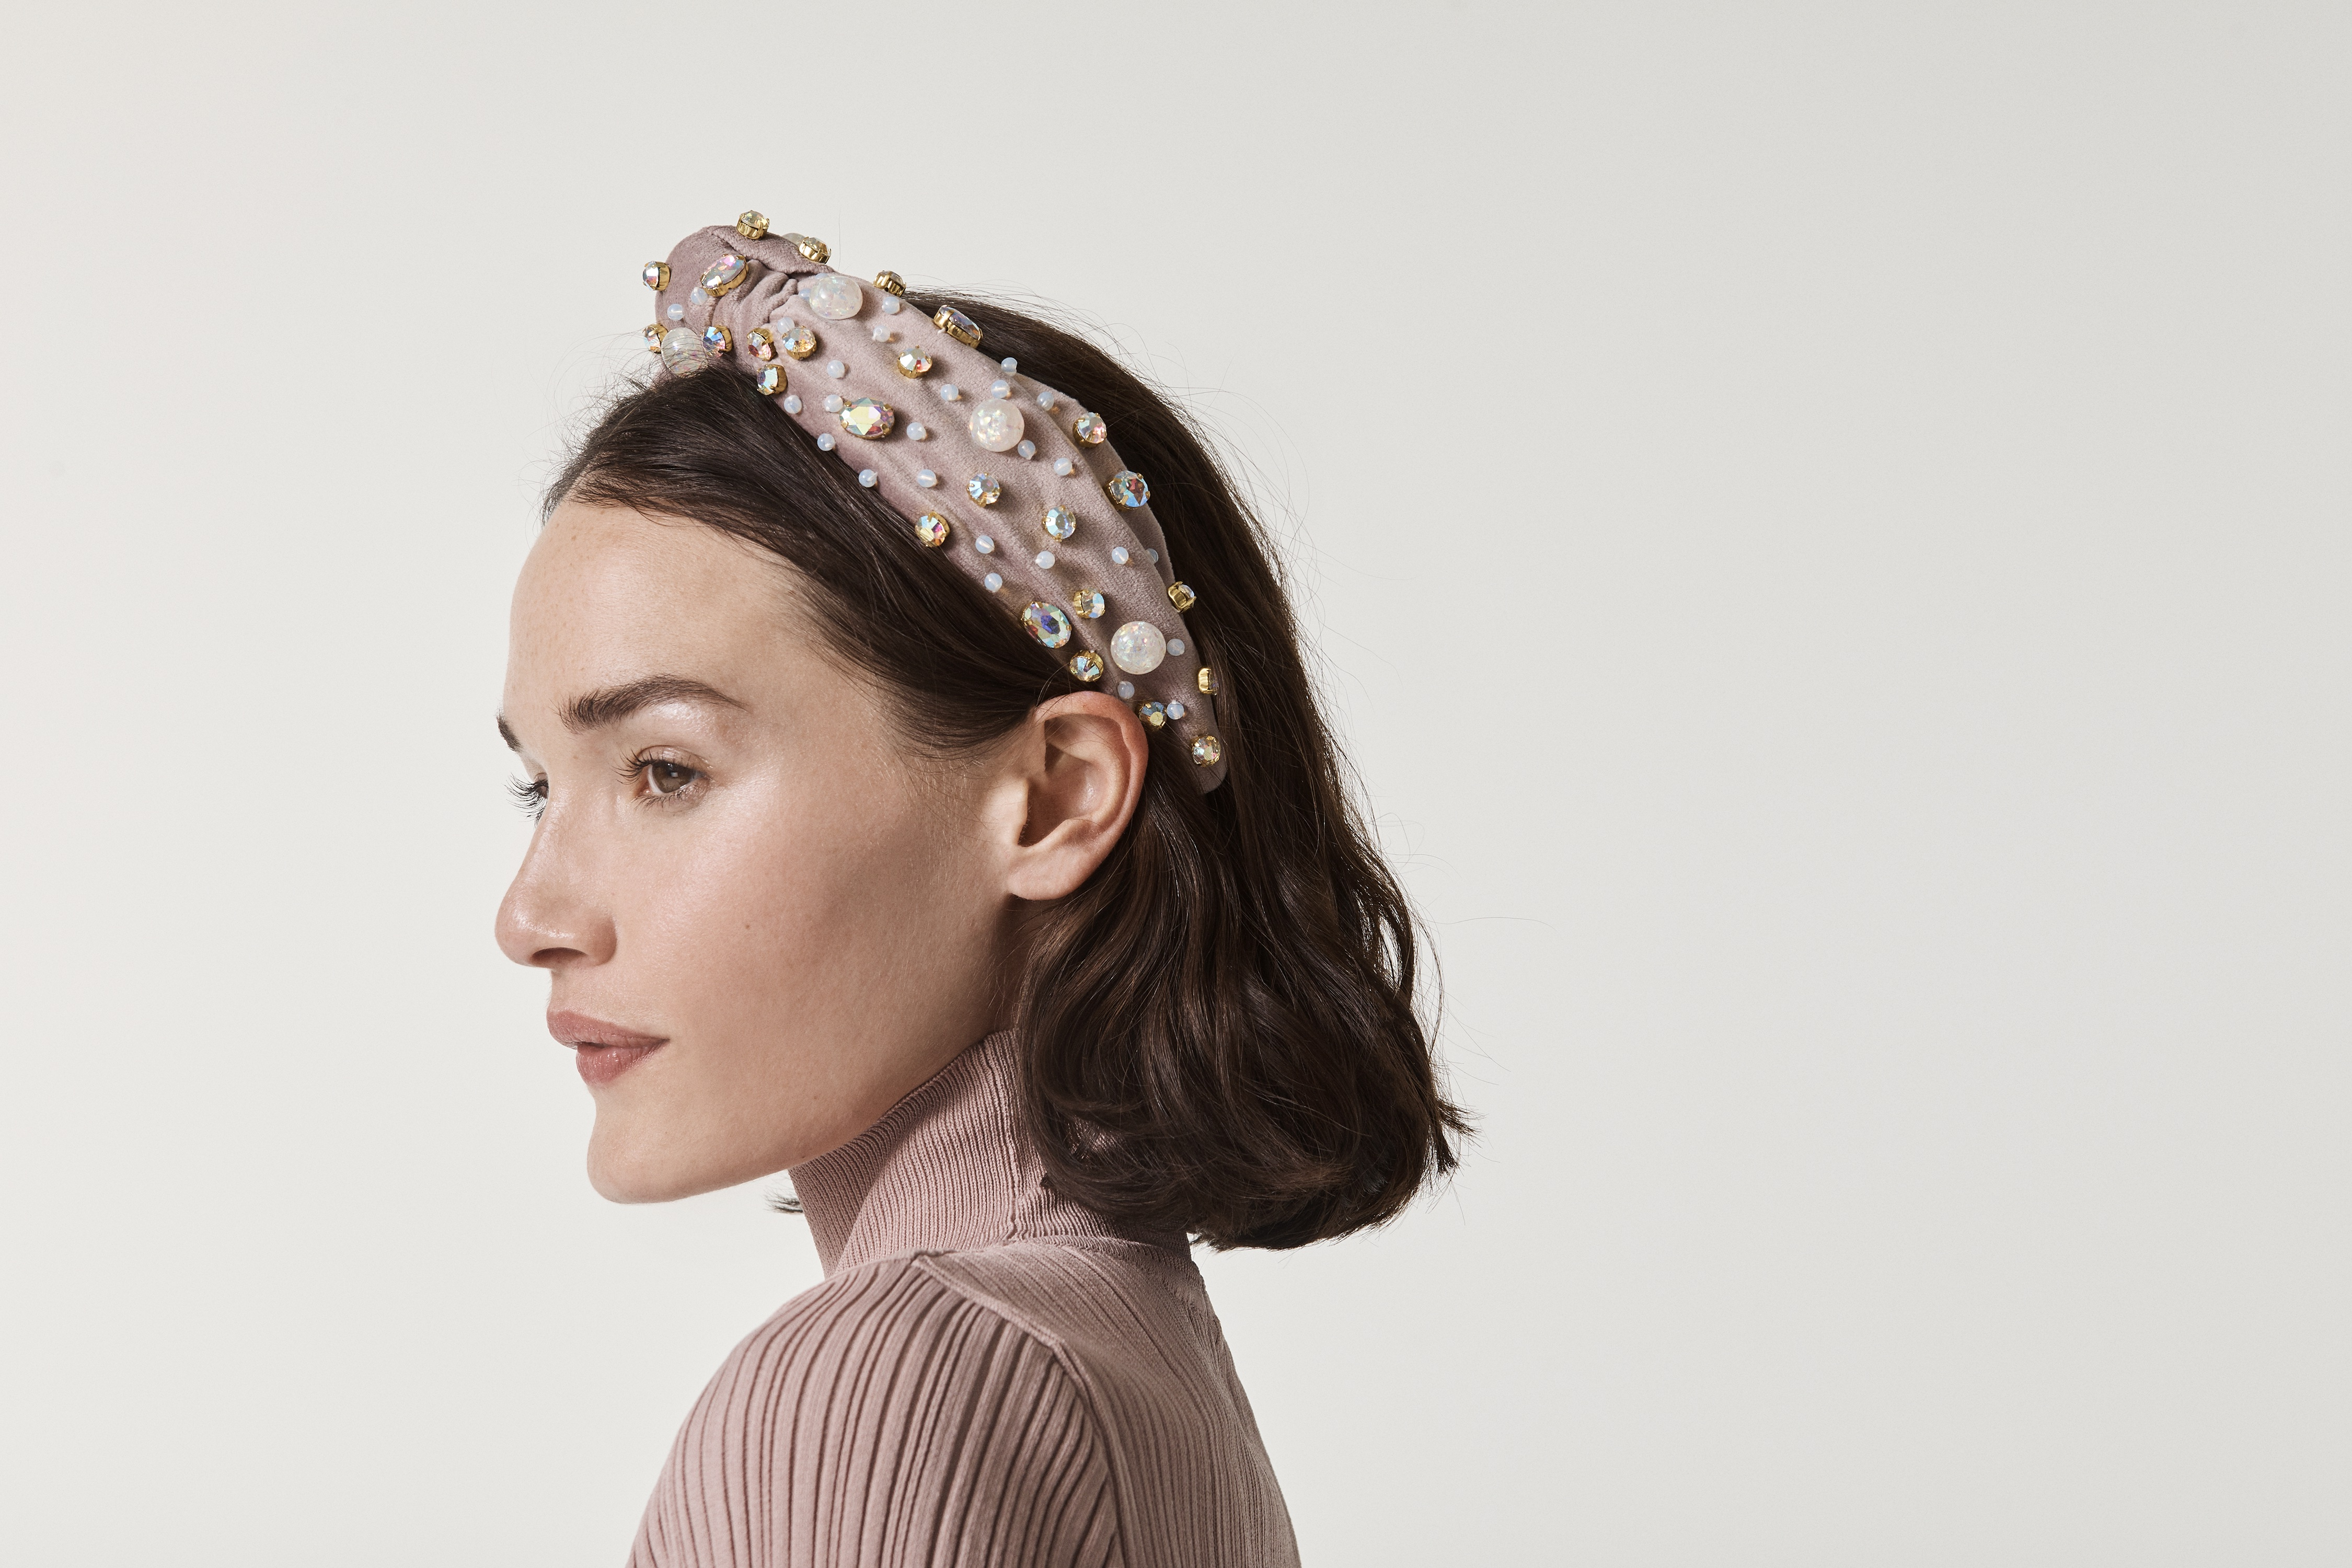 Why Headbands Have Been So Popular During the Pandemic